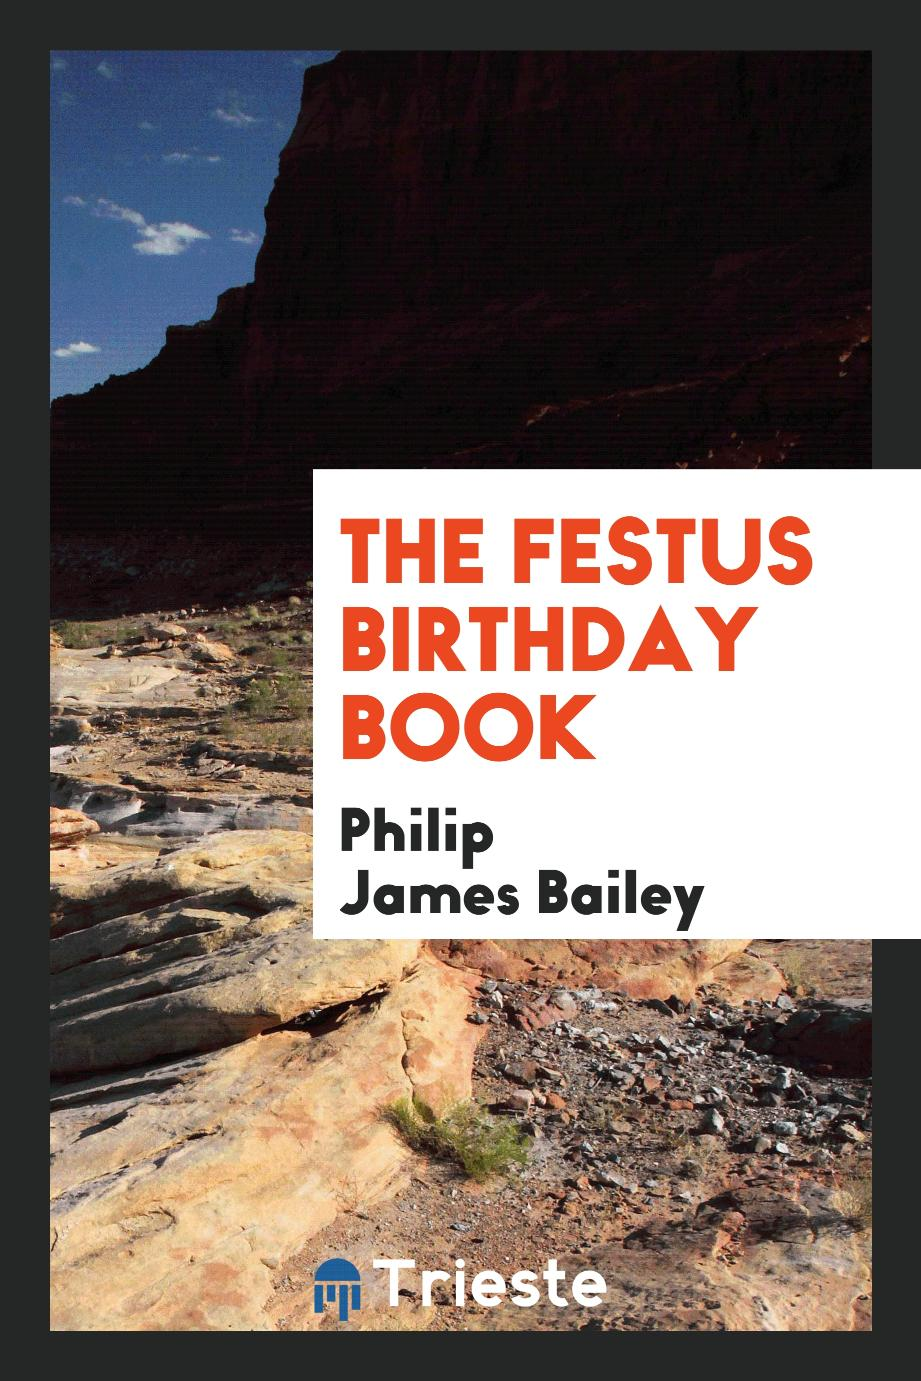 The Festus Birthday Book